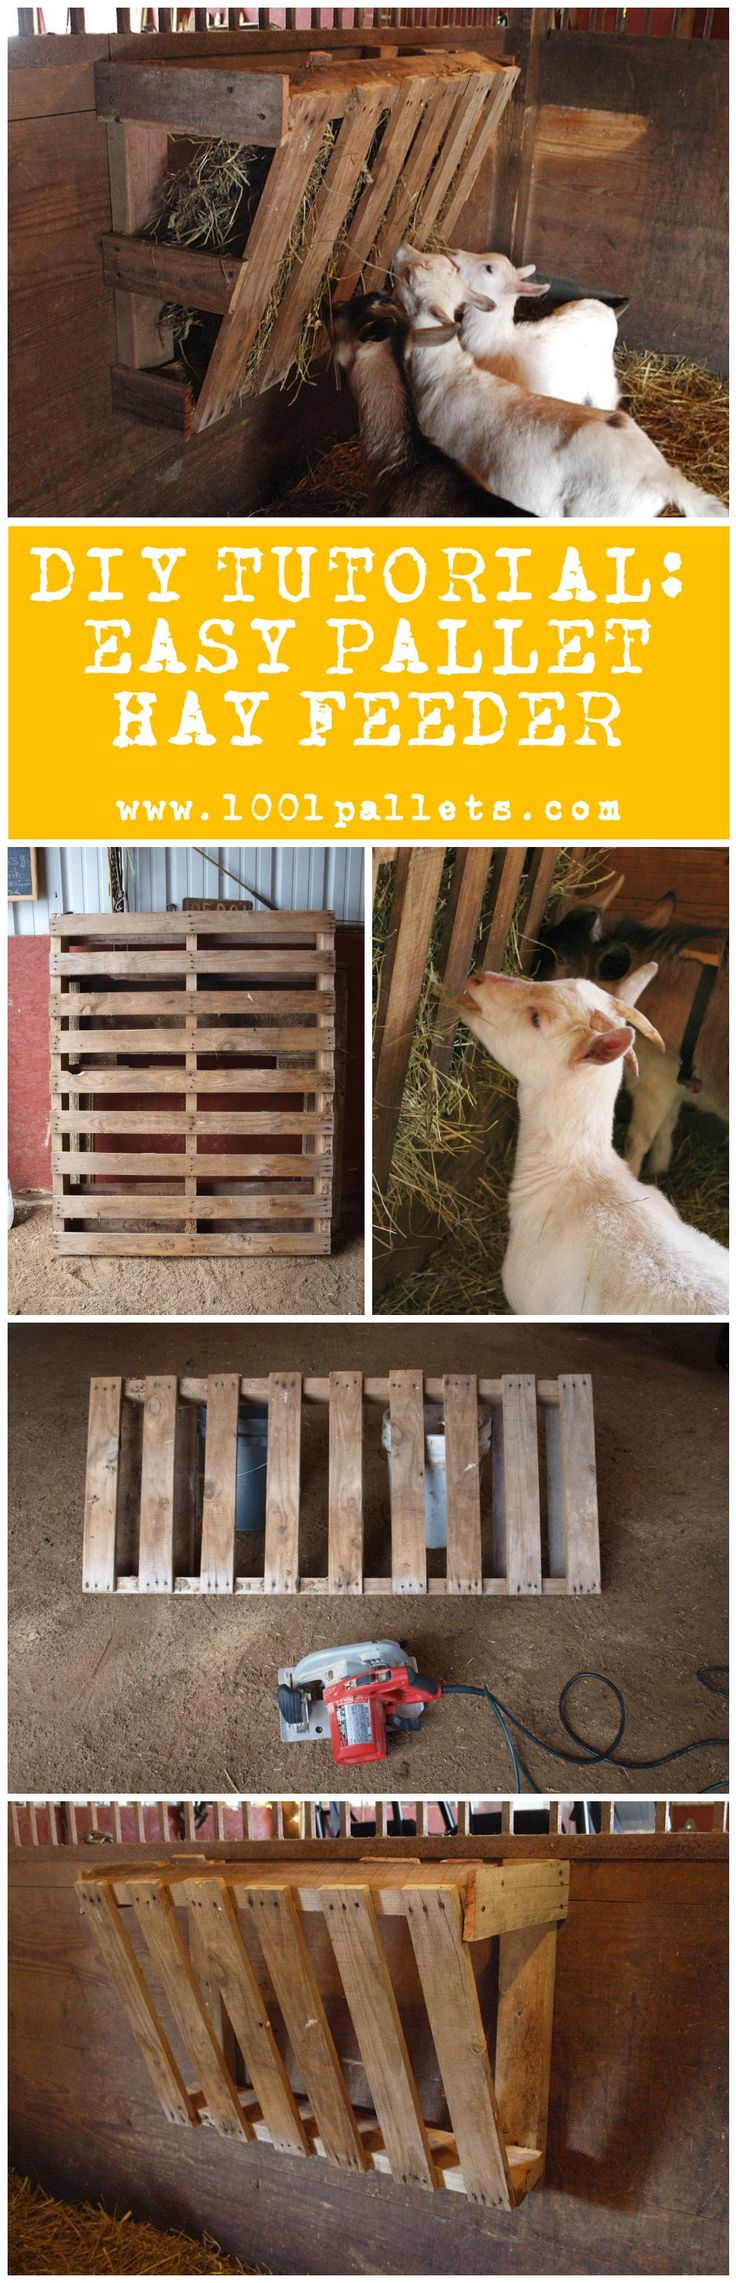 """Elizabeth Ohiothoughts from the blog """"Ohiothoughts"""" in collaboration with 1001Pallets will describe how to make an easy pallet hay feeder …                                                                                                                                                                                 More"""